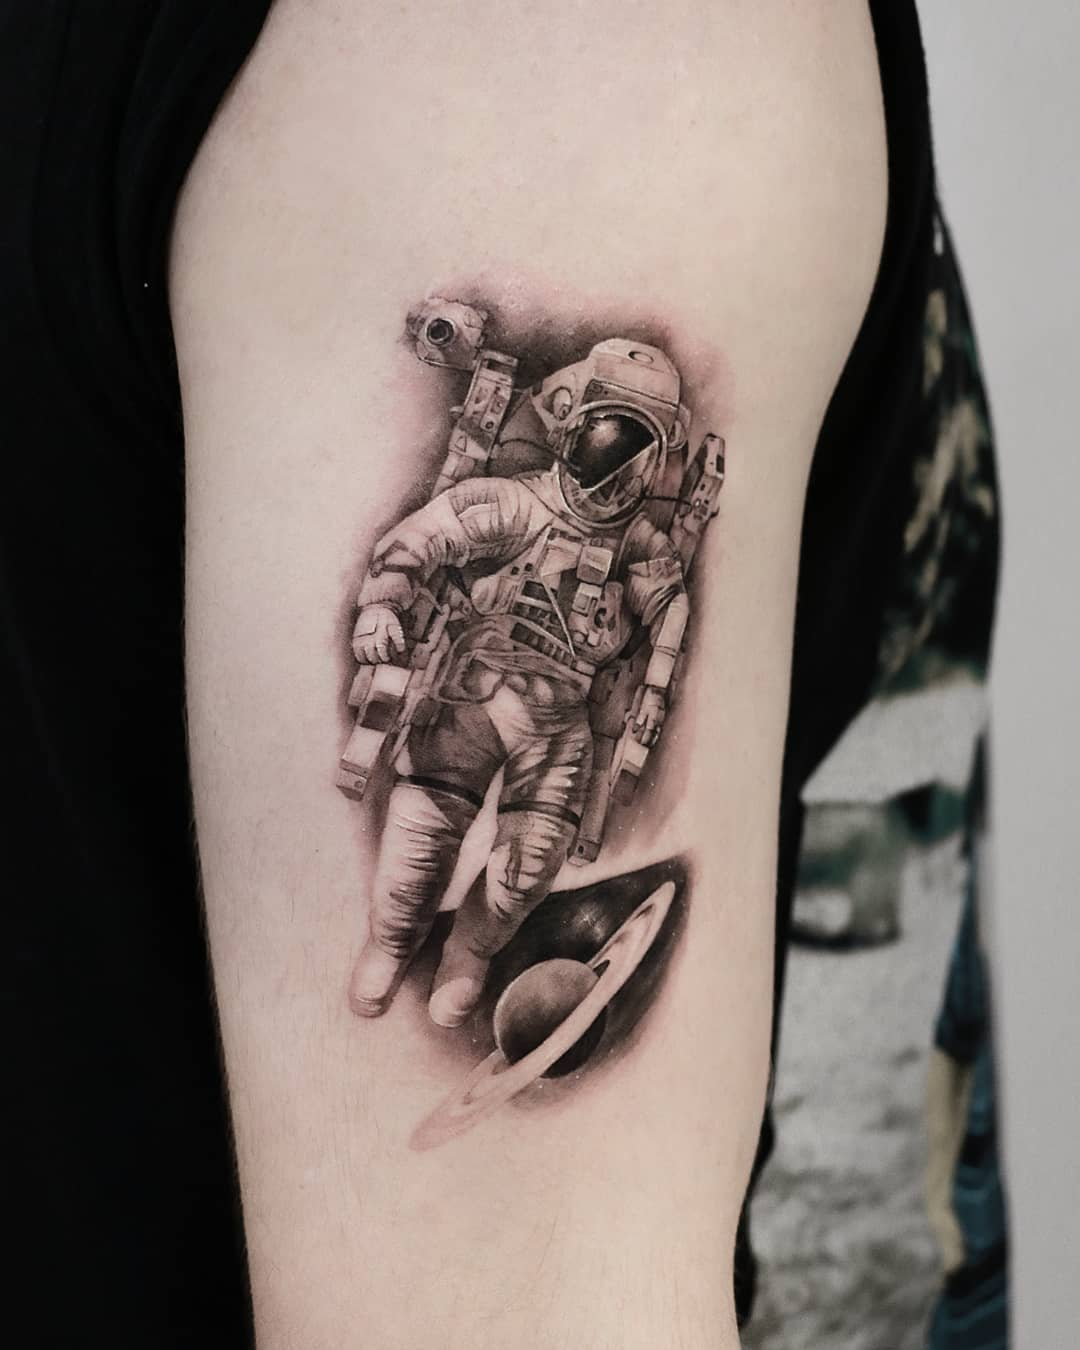 Black and Grey Astronaut Tattoo Toronto